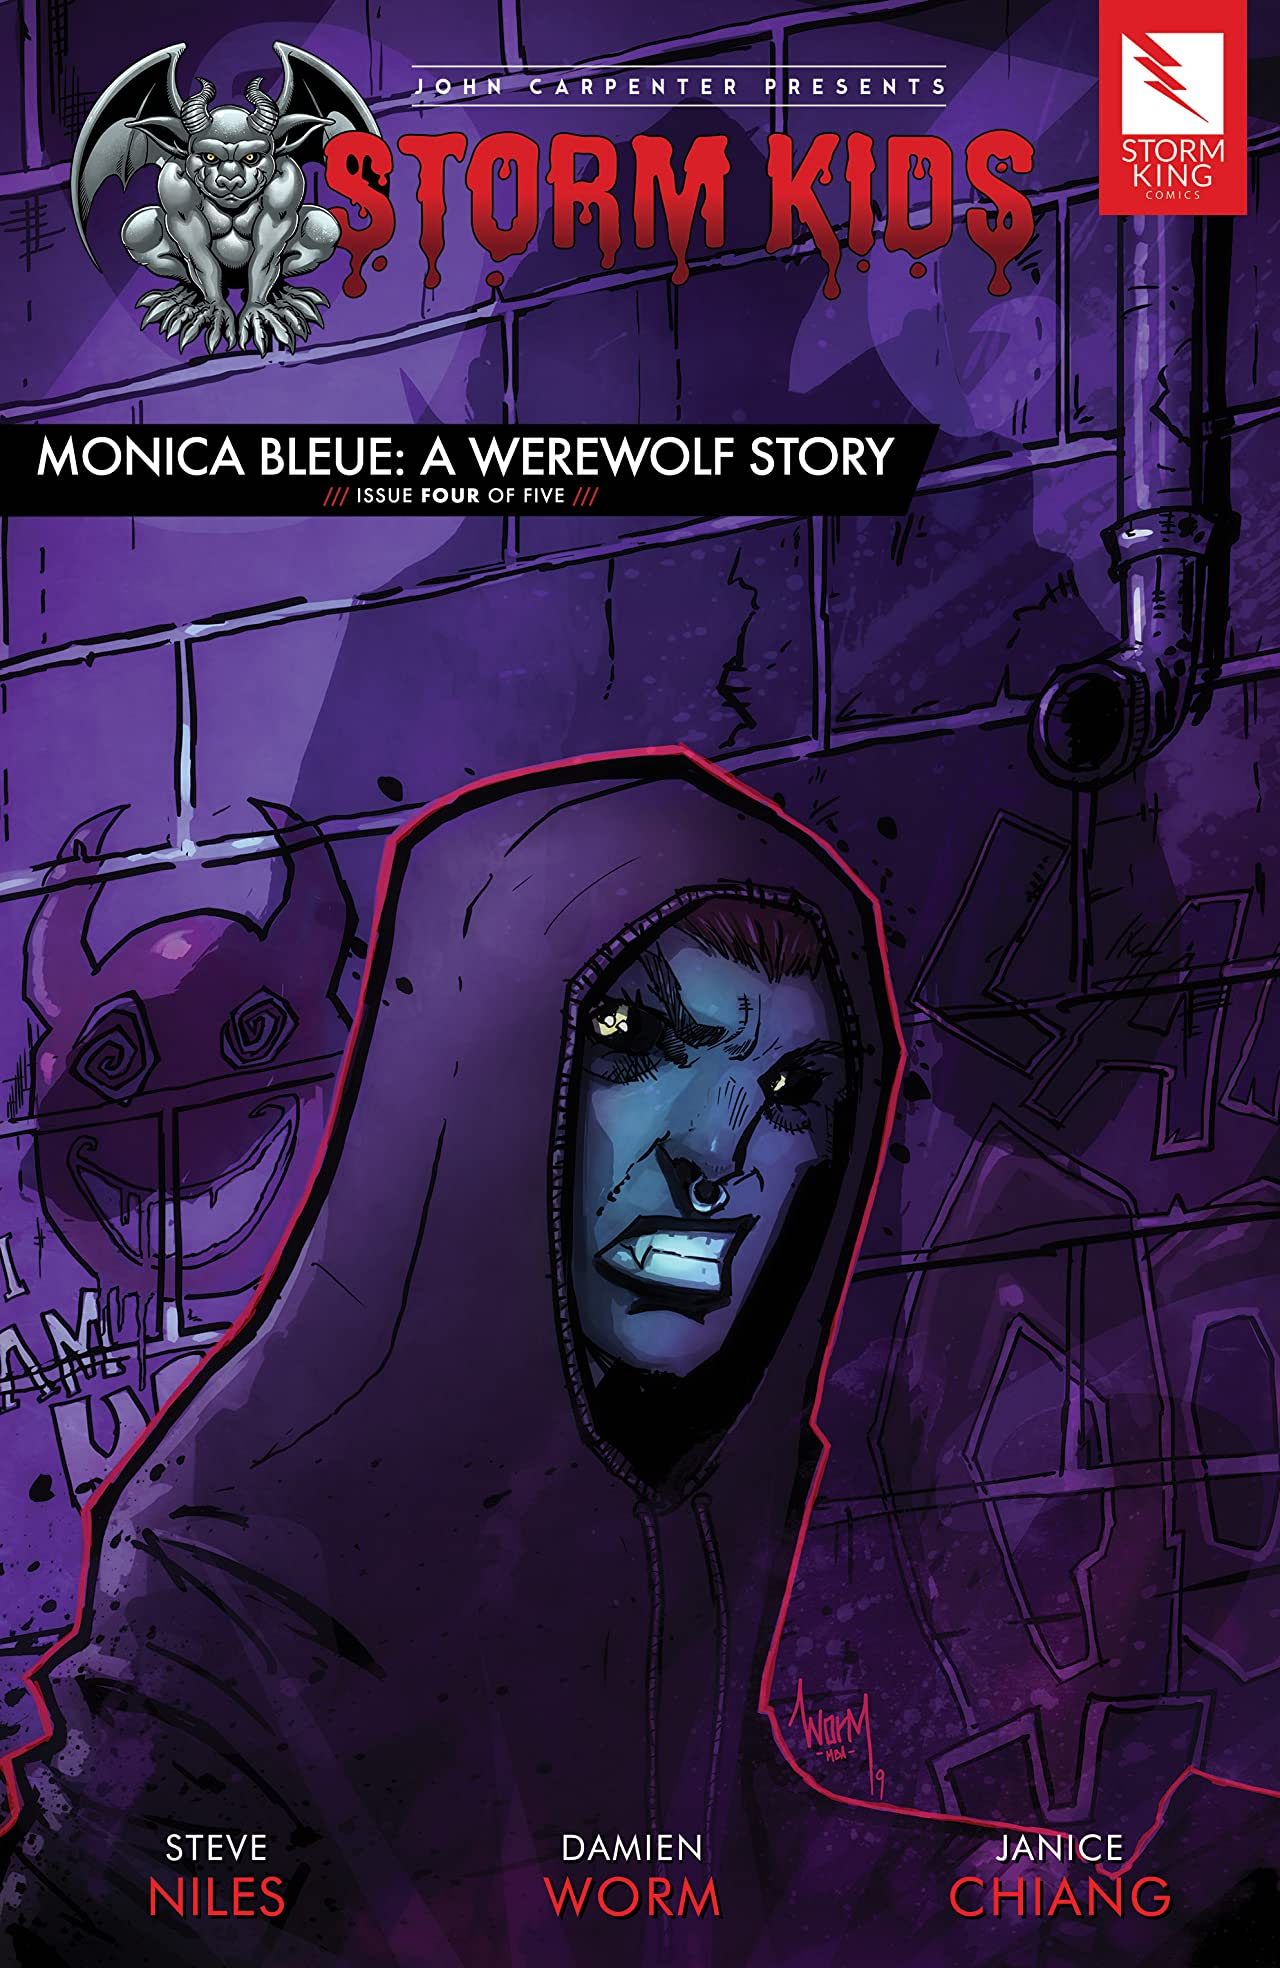 John Carpenter Presents Storm Kids: MONICA BLEUE: A WEREWOLF STORY #4